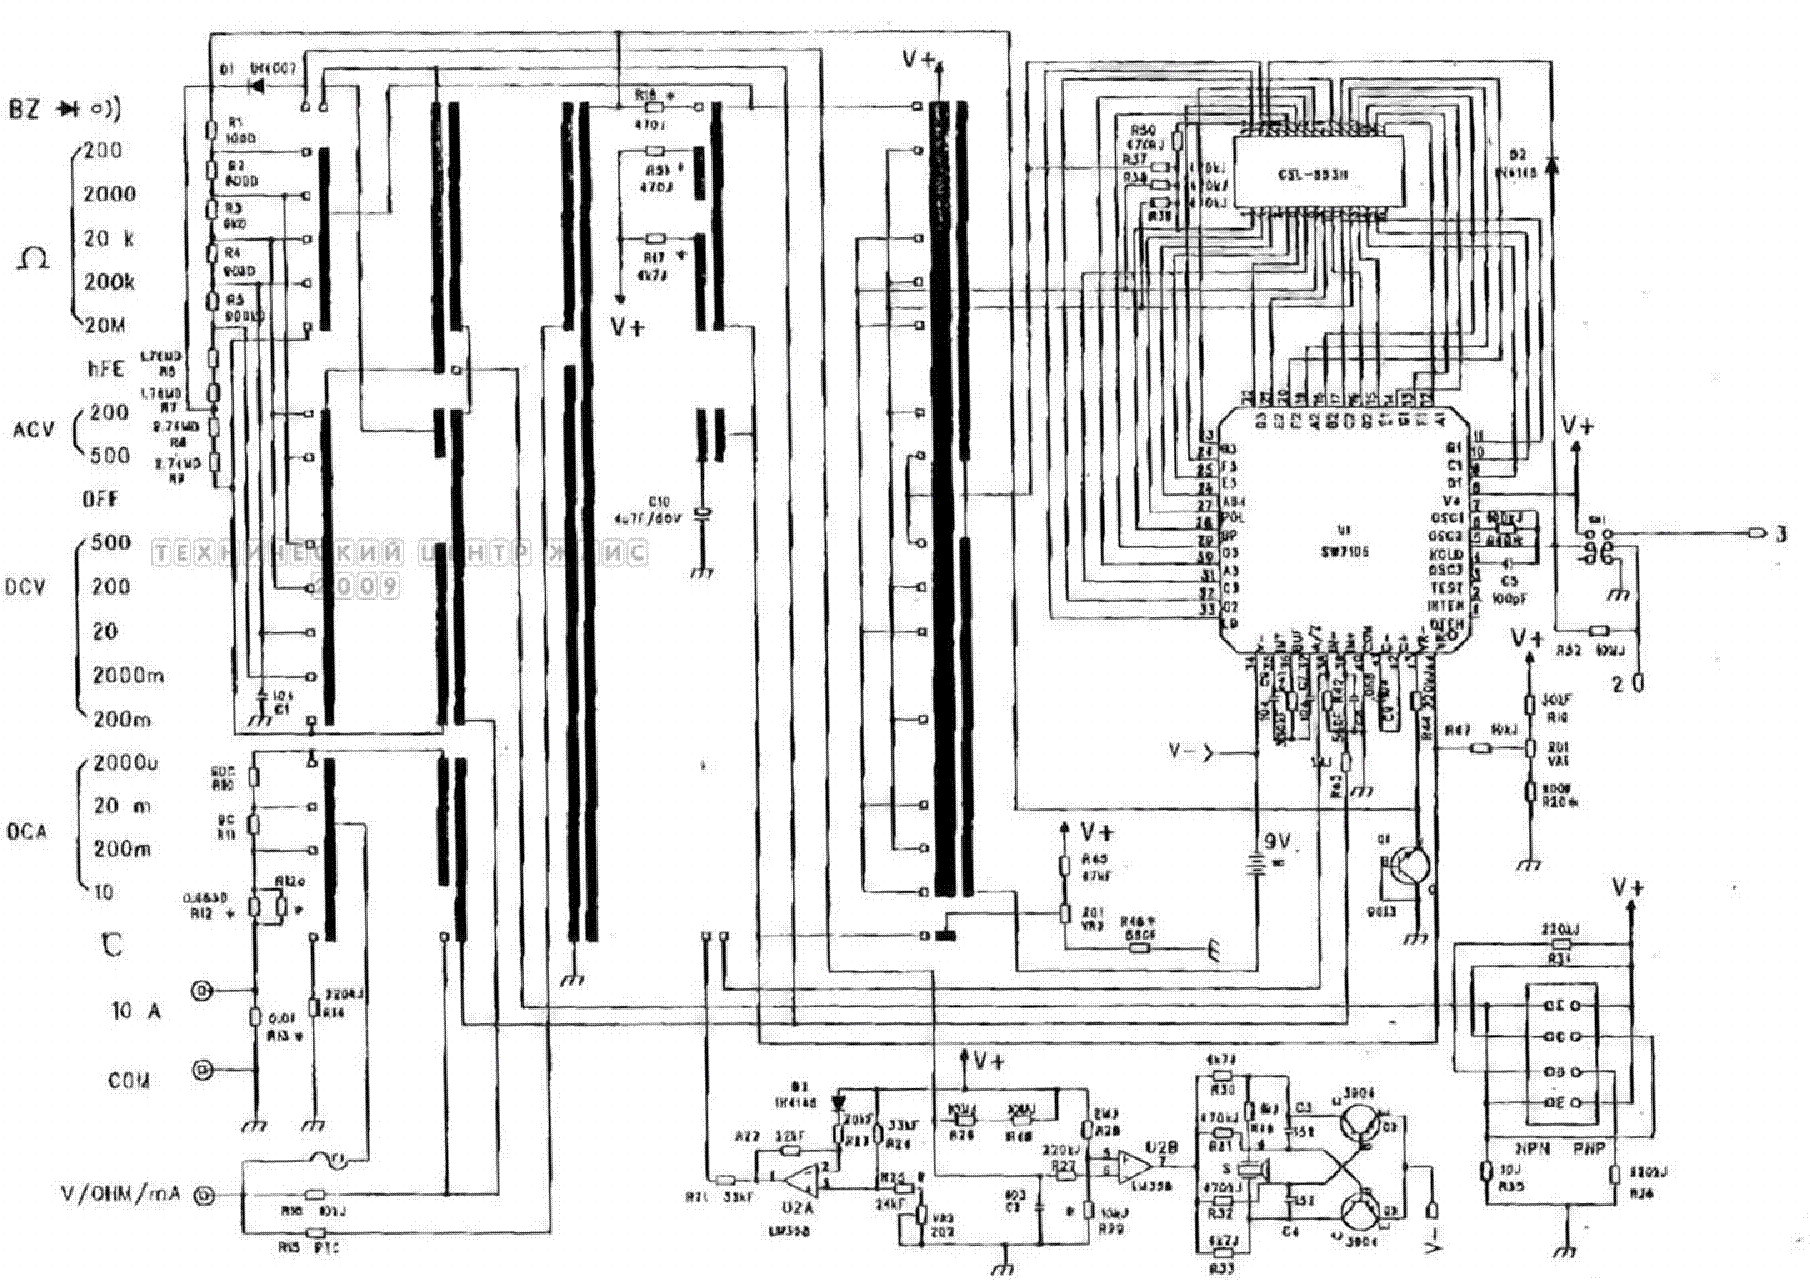 Multimeter Ut203 Sch Service Manual Download Schematics